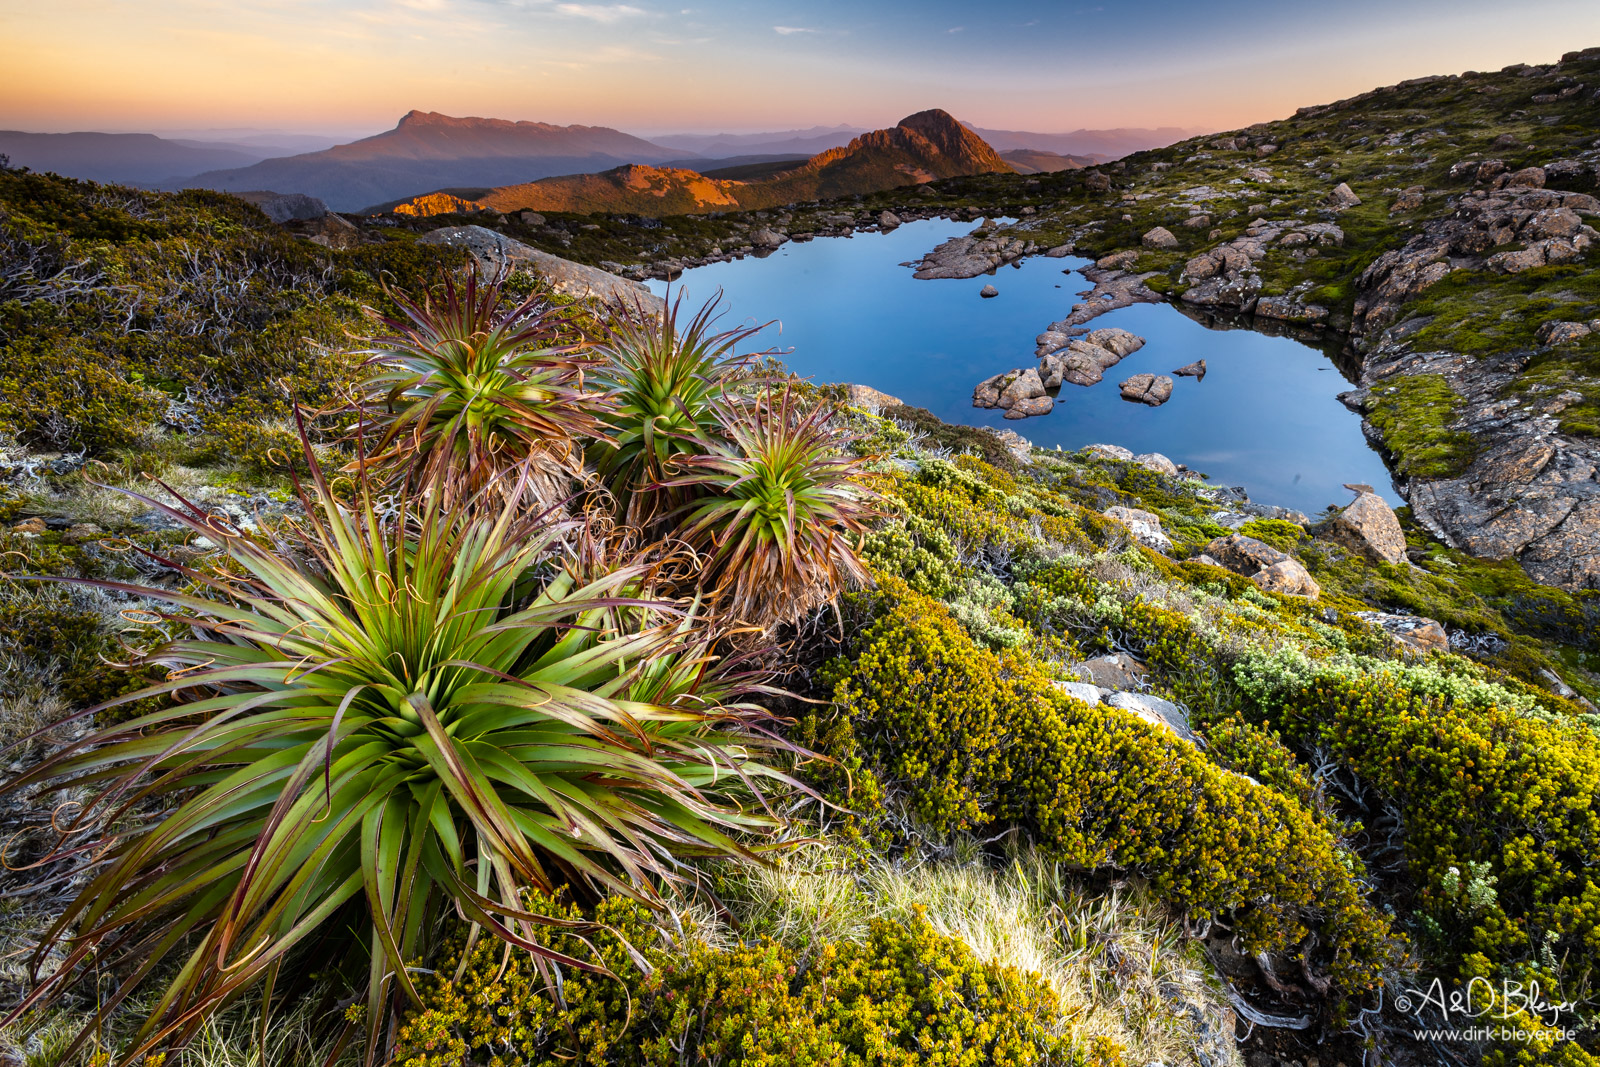 Pandani Pflanze, Southwest-Nationalpark in Tasmanien